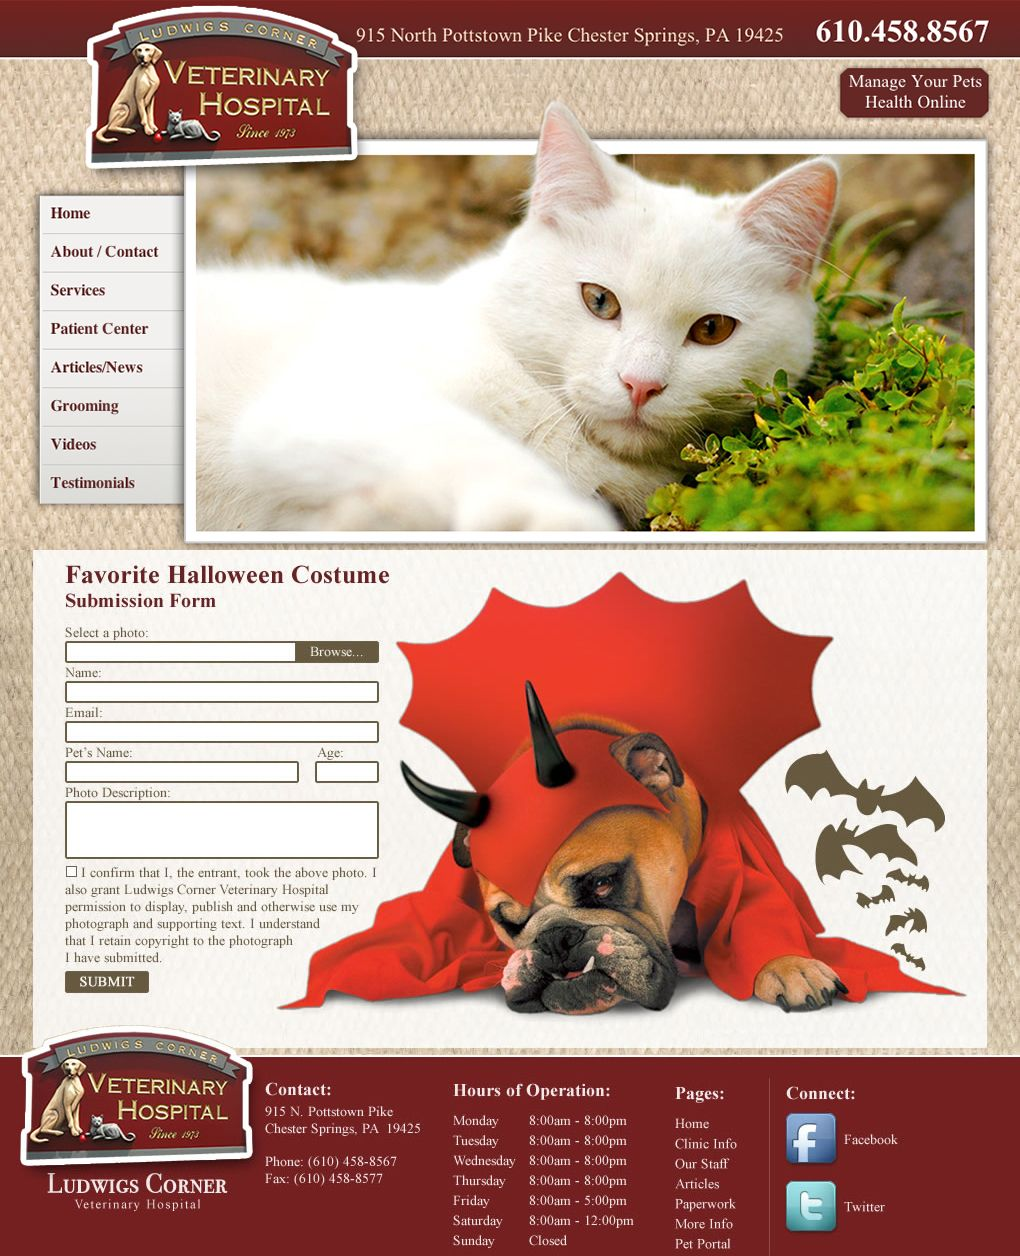 Ludwigs Corner Veterinary Hospital Veterinary Website Bluetonemedia Designed By Michelle Lemasters Animal Hospital Veterinary Hospital Veterinary